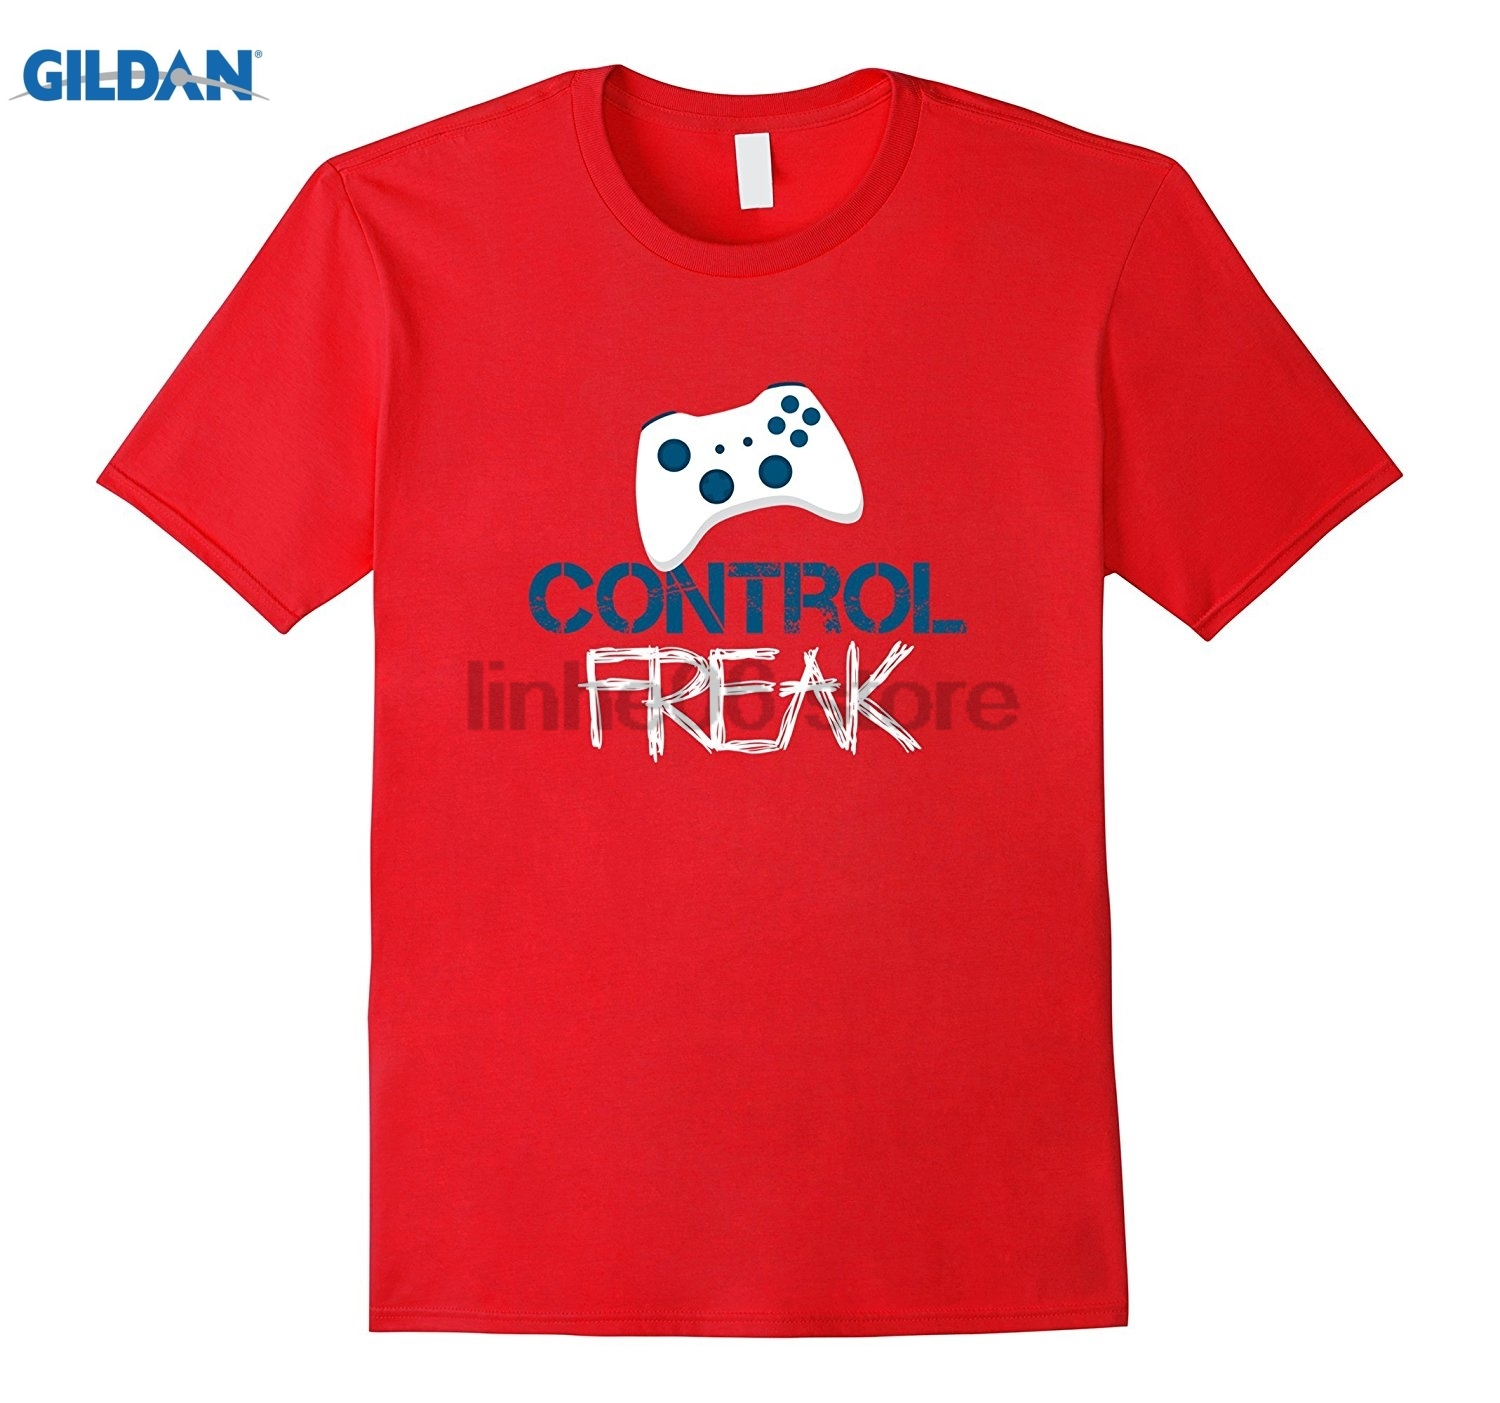 GILDAN Control Freak Video Gaming Addict Obsession Console T-shirt Womens T-shirt ...